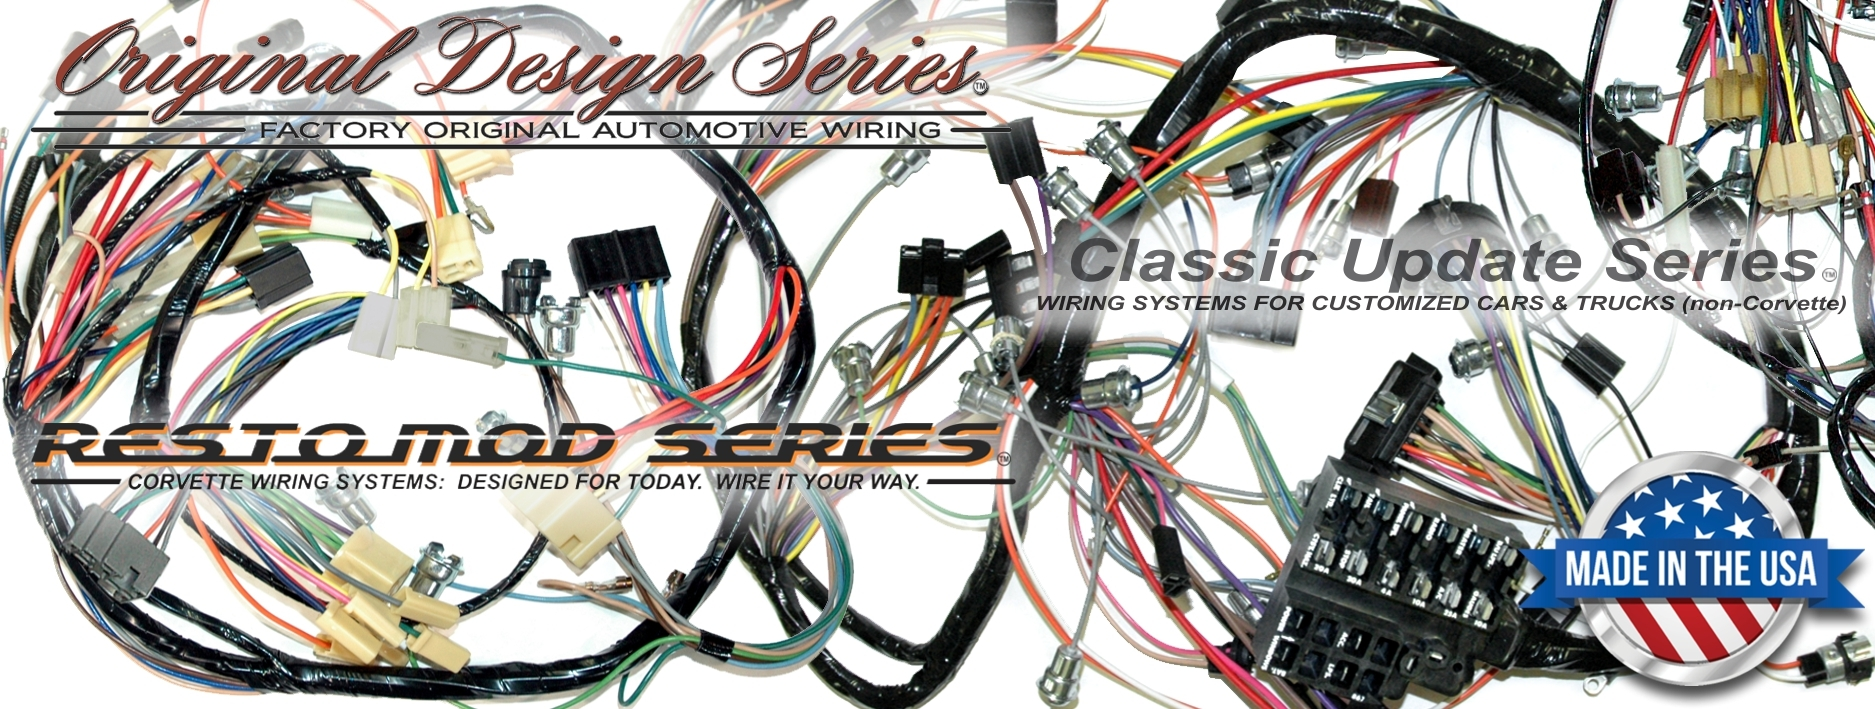 exact oem reproduction wiring harnesses and restomod wiring systems rh lectriclimited com 1969 Corvette Wiring Diagram 1969 Corvette Wiring Diagram